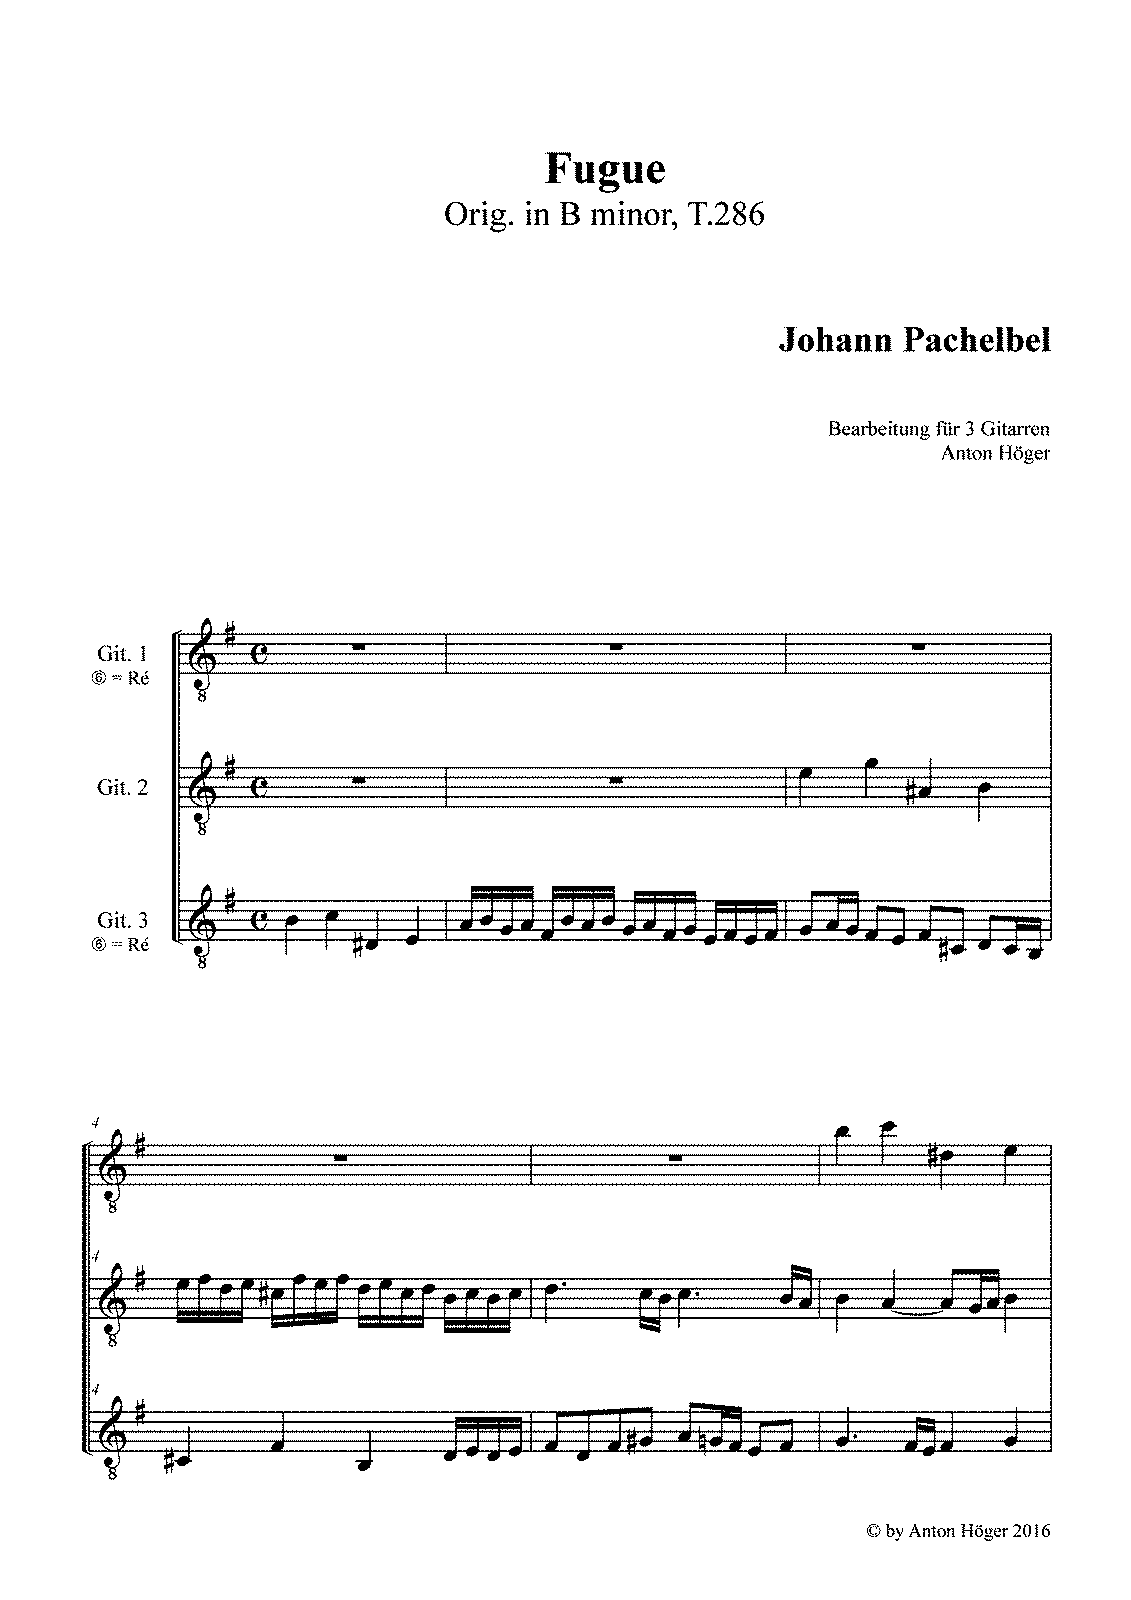 PMLP207865-Pachelbel, Johann - Fuge in B minor, T.286.pdf